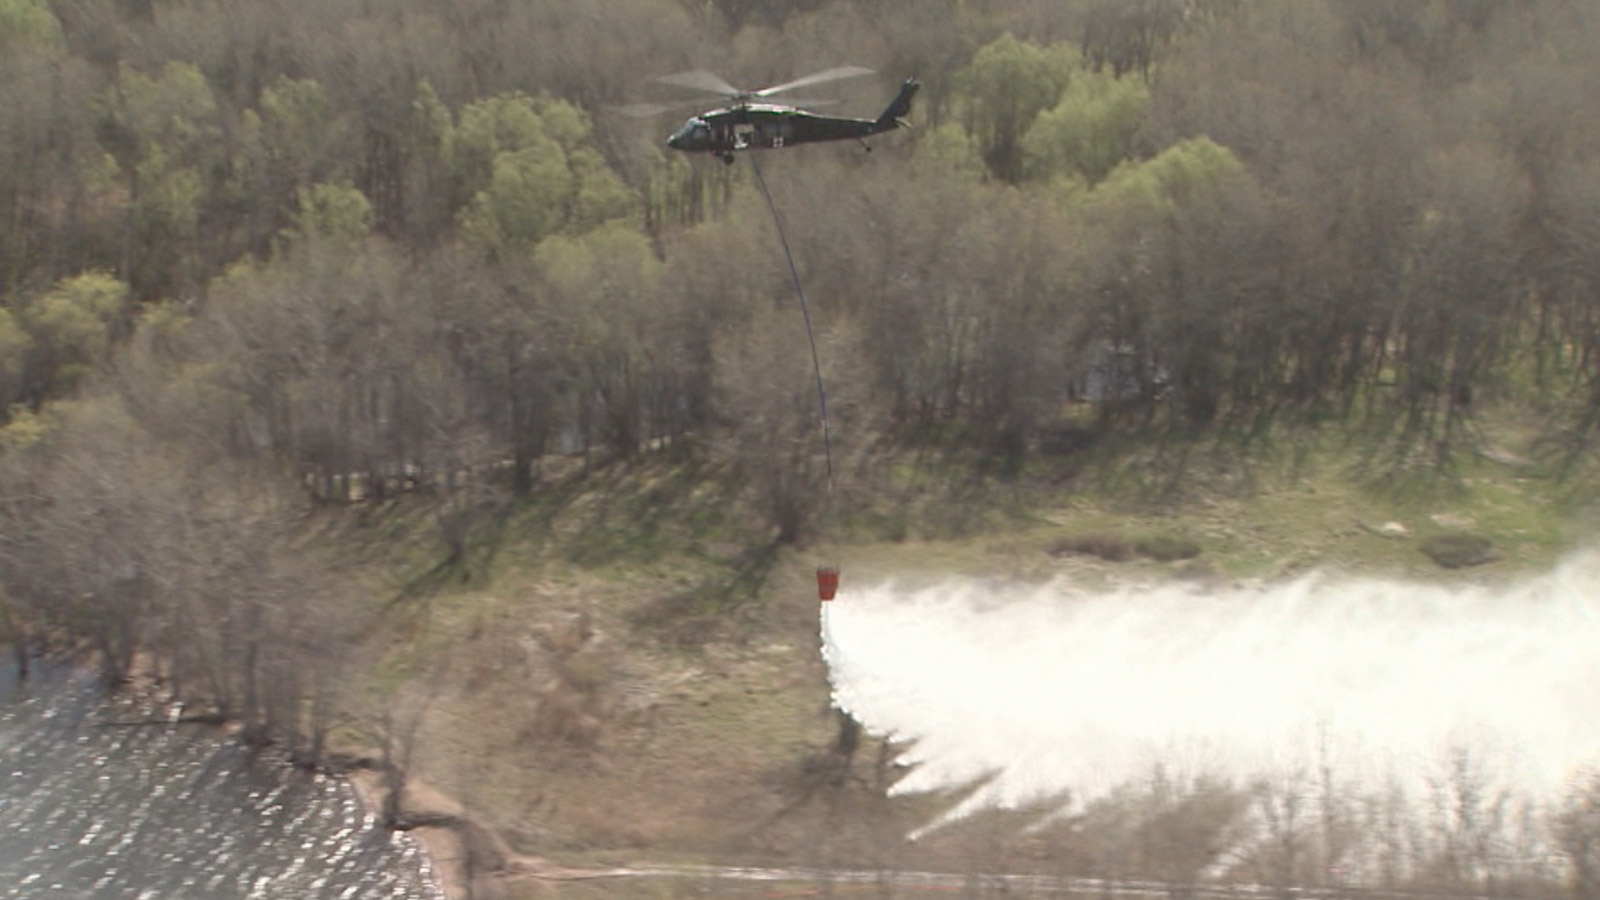 Crews conducted wildfire training near Chatfield Reservoir (credit: CBS)